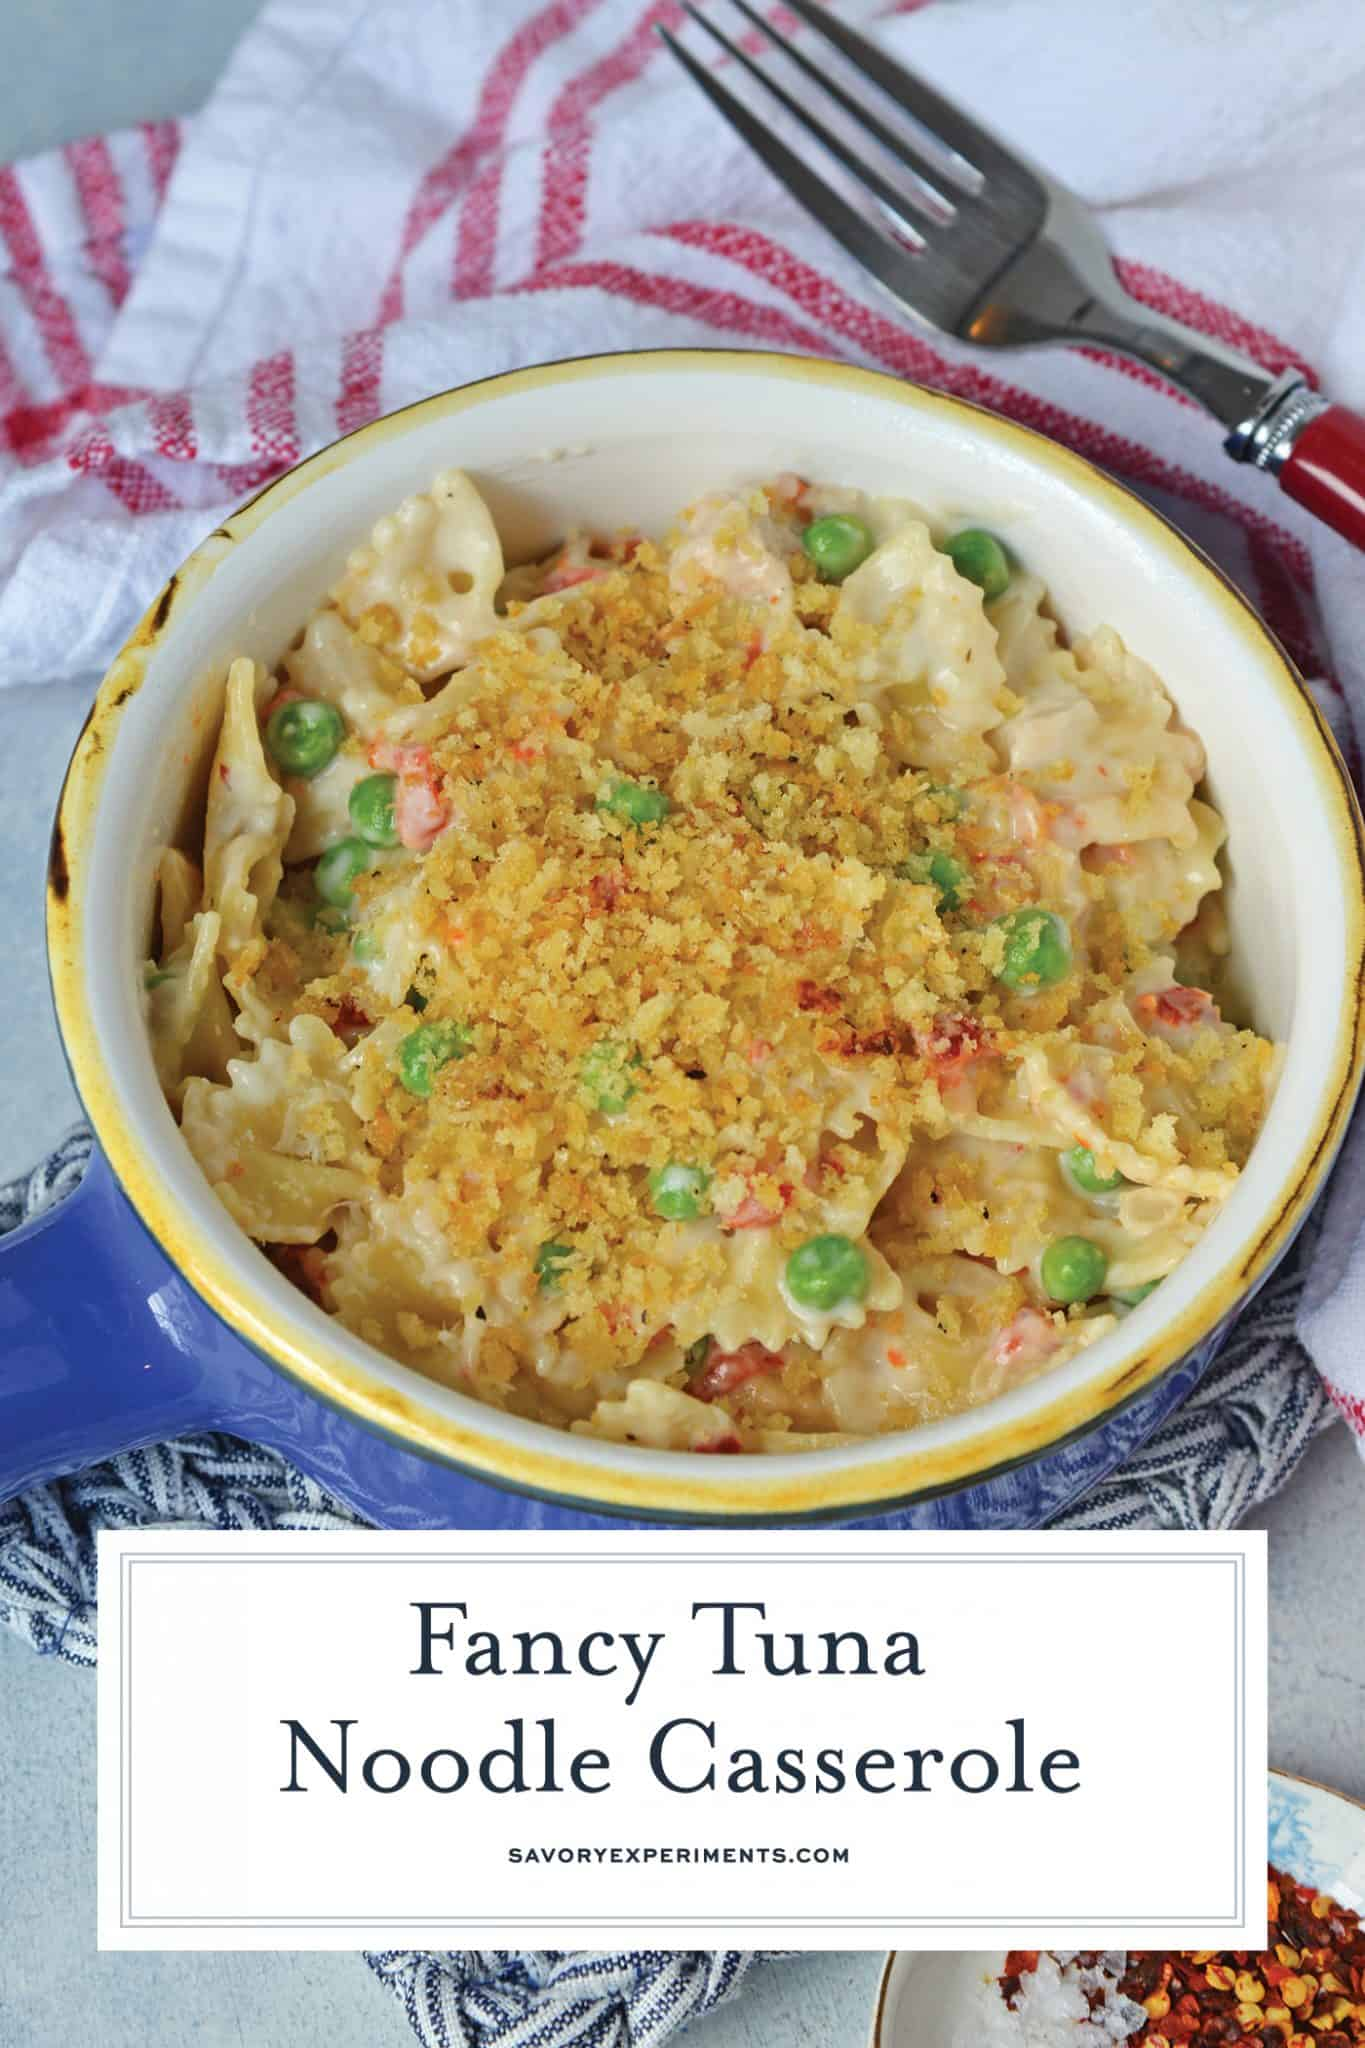 Fancy Tuna Noodle Casserole comes packed with bow tie pasta, seasoned panko, fresh vegetables and sun dried tomatoes! #tunanoodlecasserolerecipe #easytunanoodlecasserole www.savoryexperiments.com